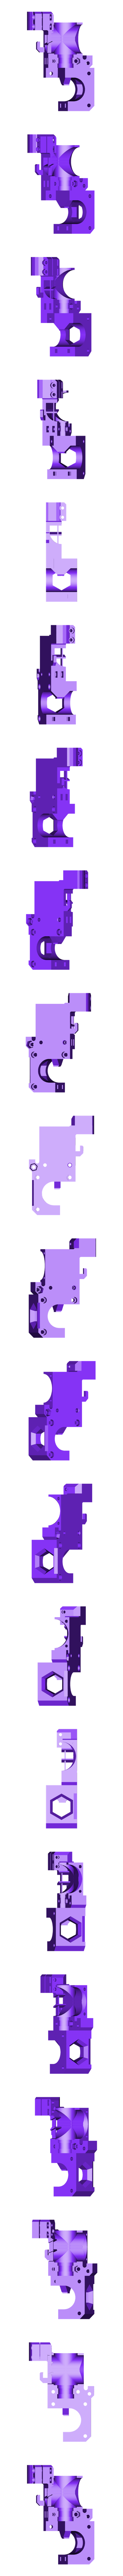 extruder-body.stl Download free STL file Prusa i3 MK2S extruder body with 12mm induction probe holder • 3D printable template, tarek